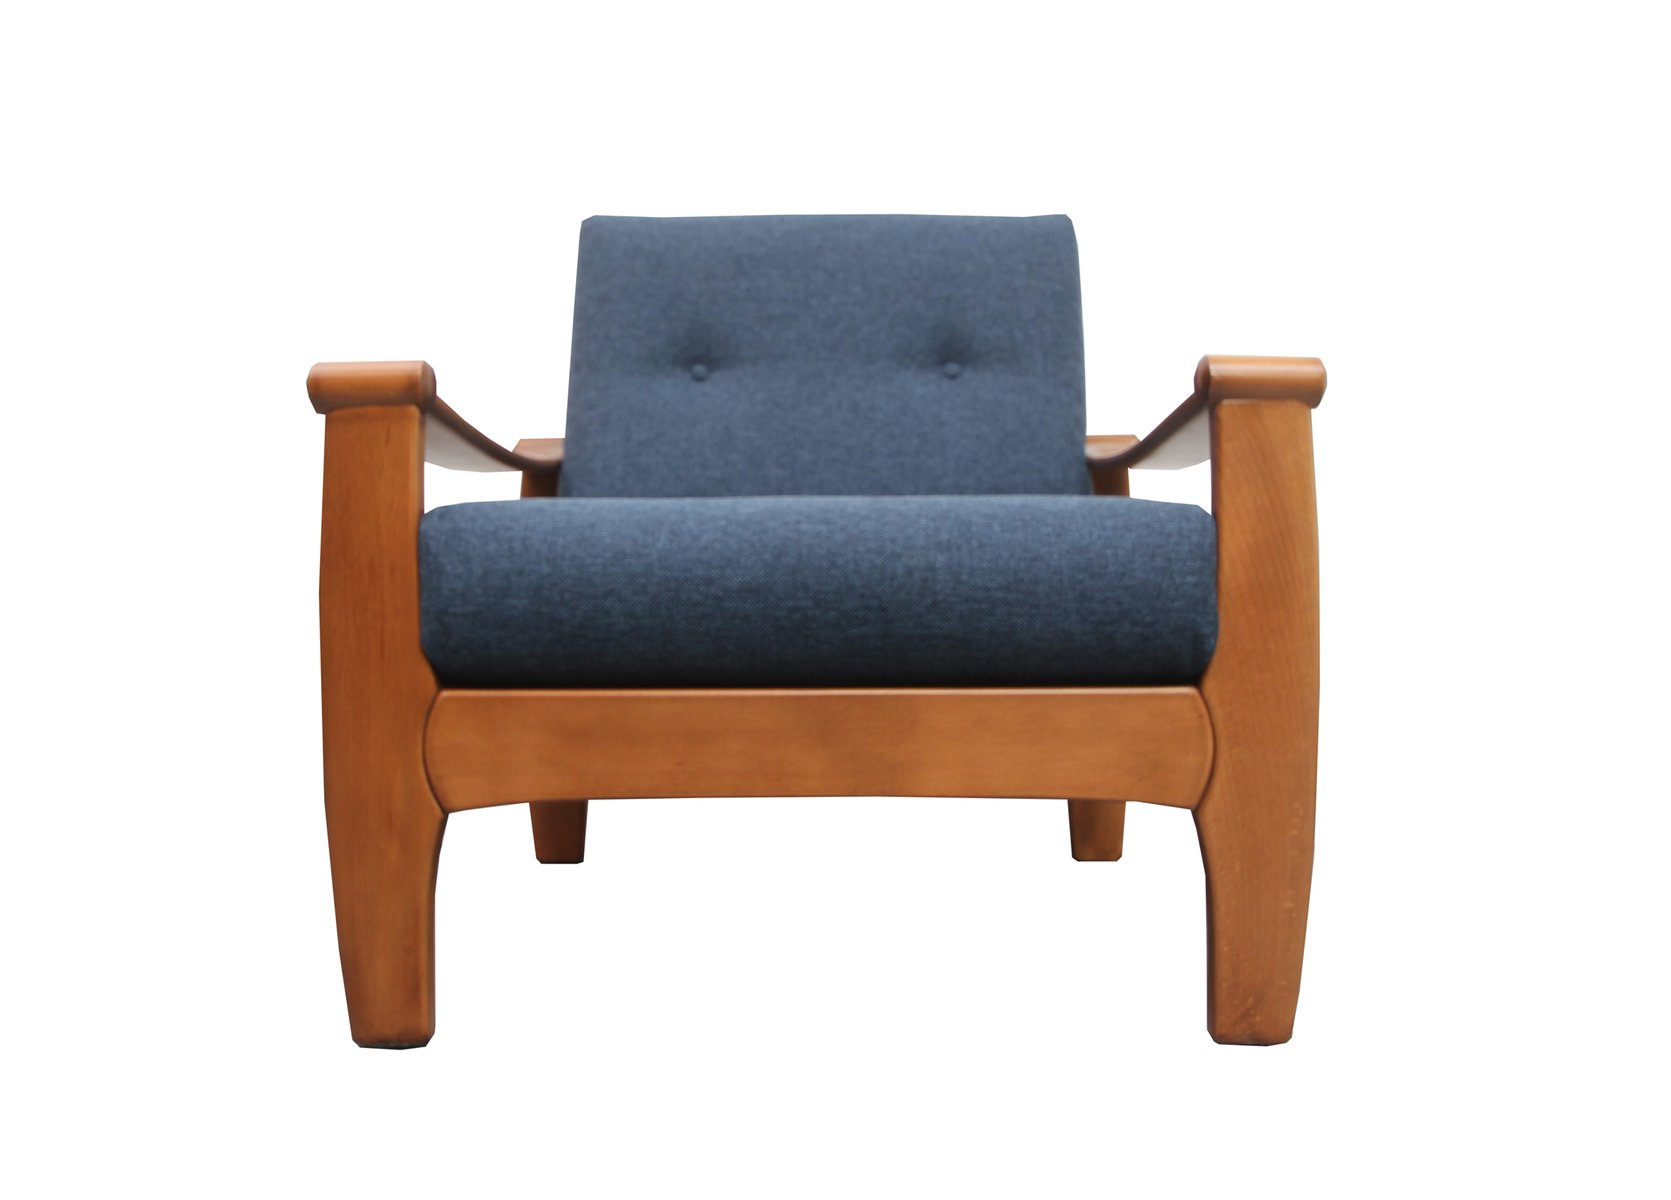 Dark Blue Armchair, 1960s for sale at Pamono